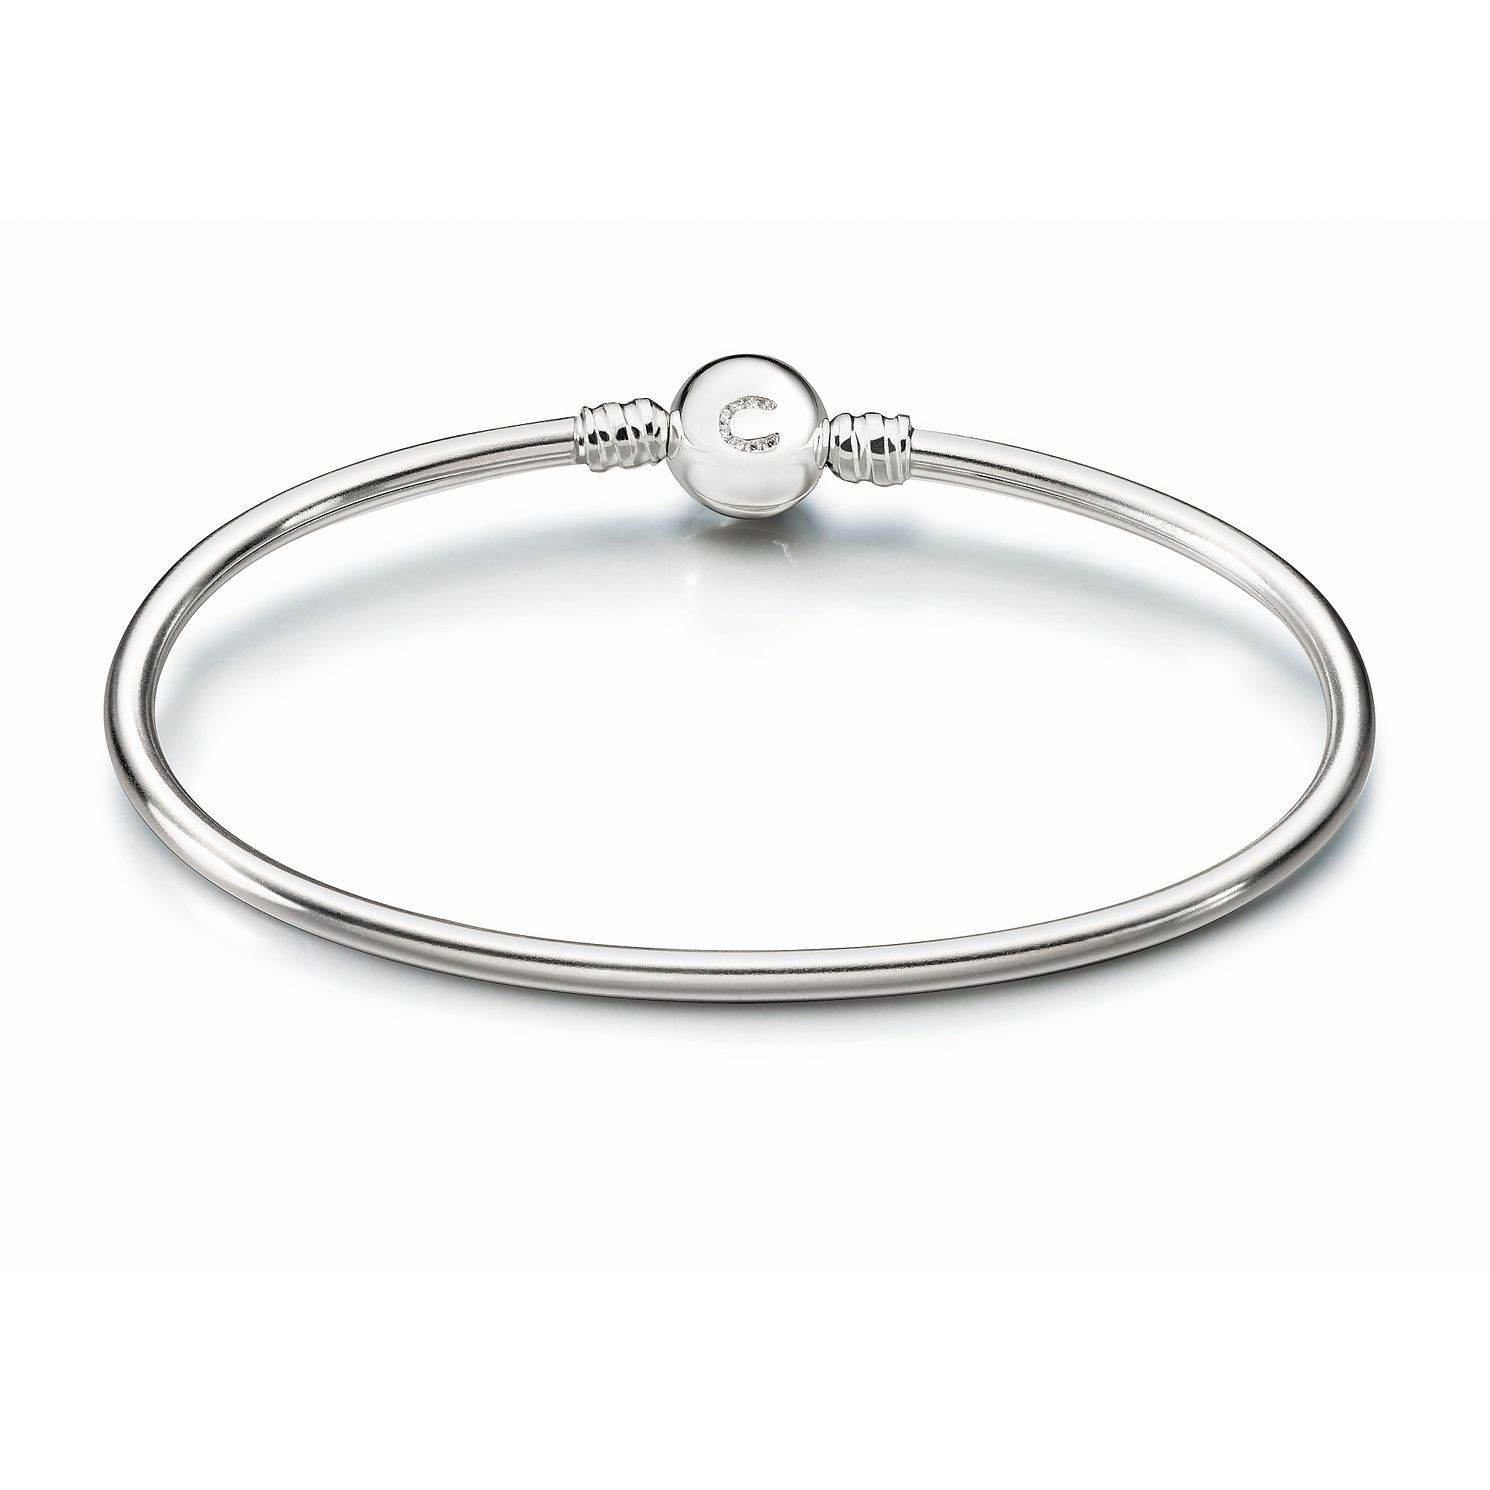 Chamilia Brilliance Swarvoski Zirconia 8.2 inches Bangle - L - Product number 1962450